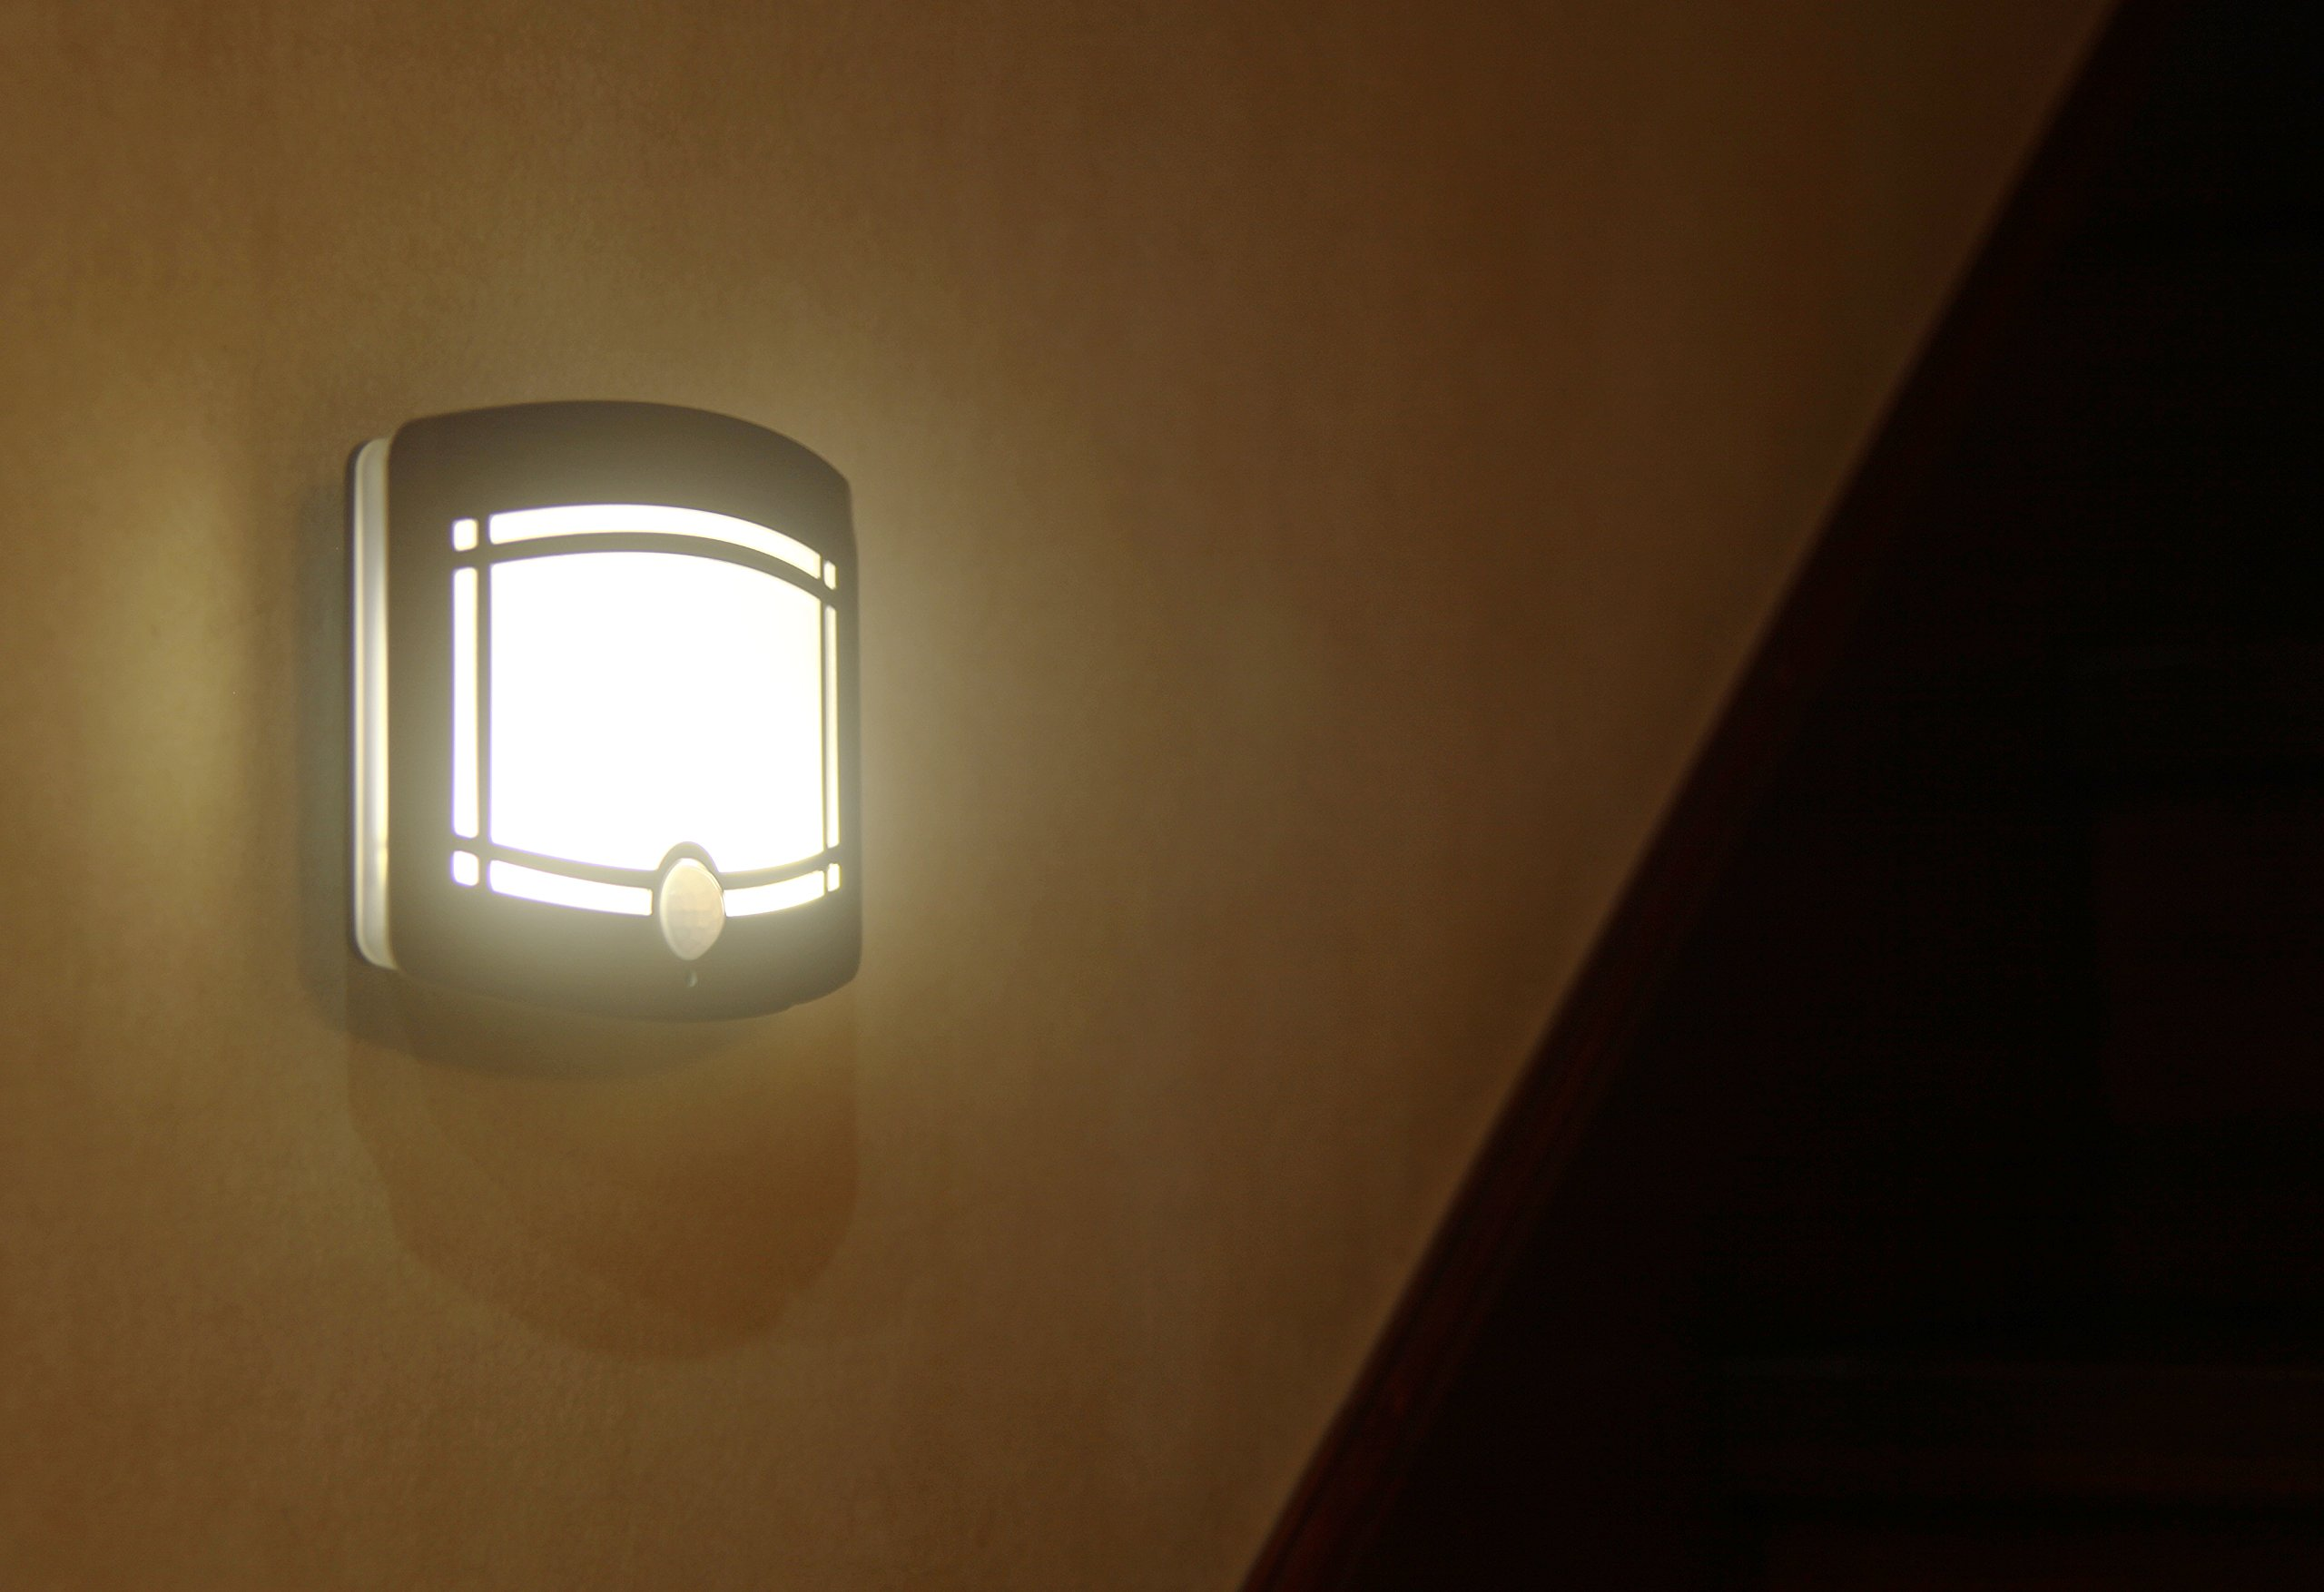 Motion Sensor Auto LED Night Light - Soft Warm White Wireless Wall Sconce Light Controlled by Motion Activated Sensing & Light Sensor - Stick on Anywhere Wireless Battery Powered (Not included) by WISLIGHT (Image #6)